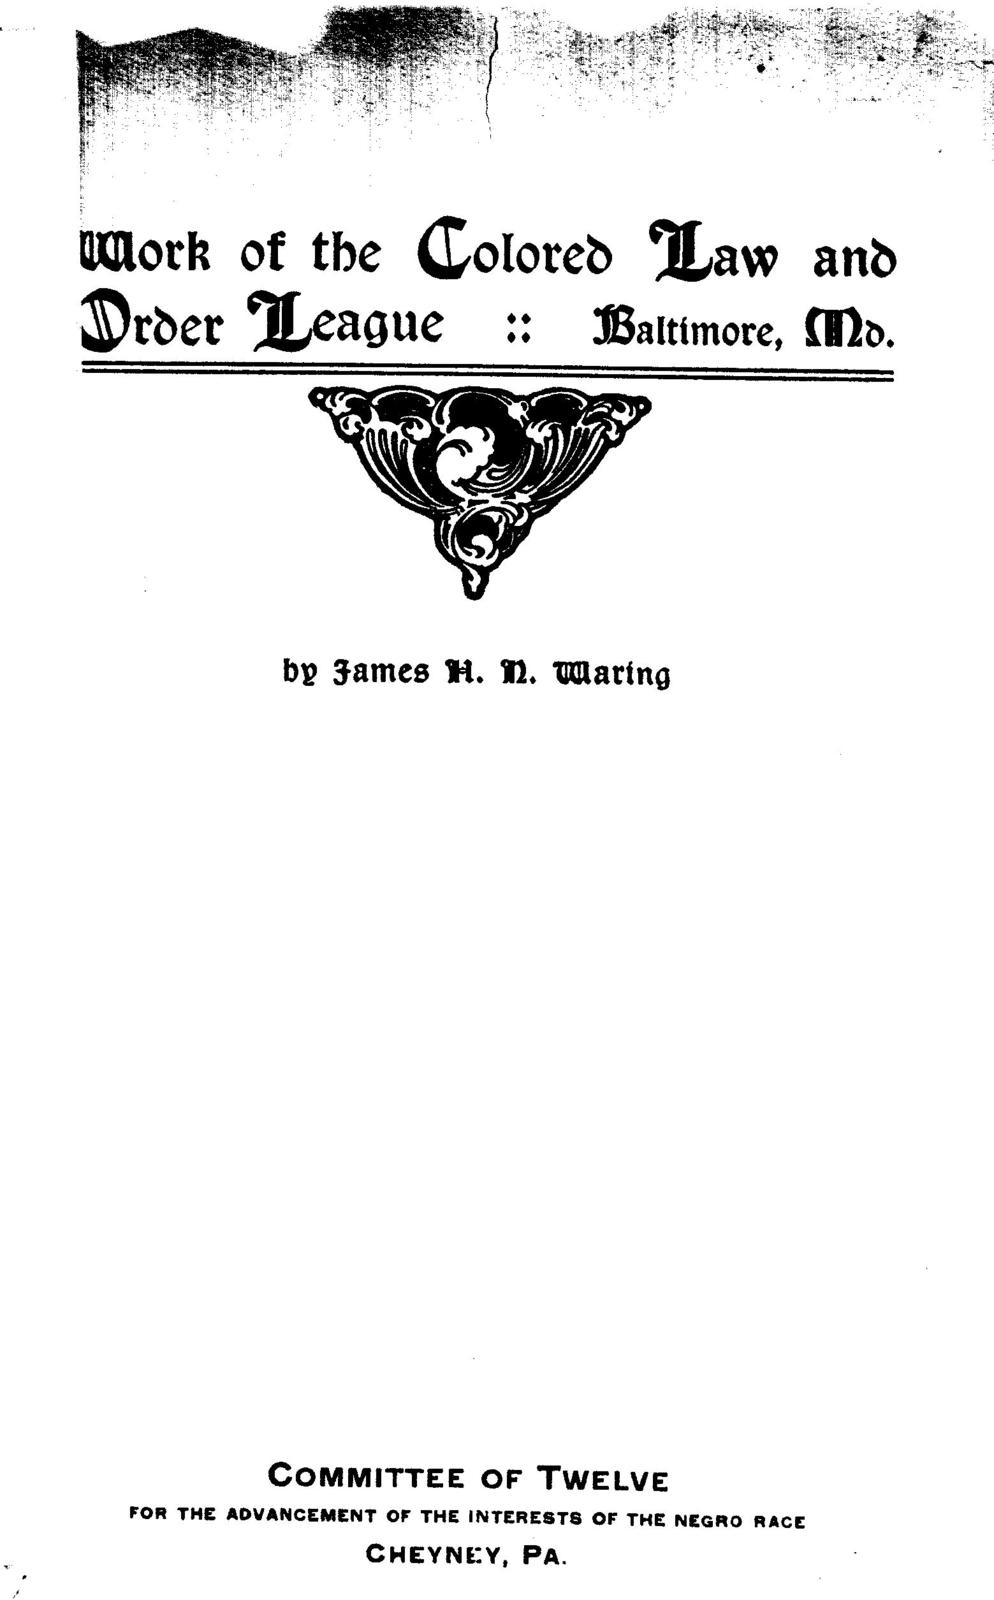 Work of the Colored law and order league, Baltimore, Md.